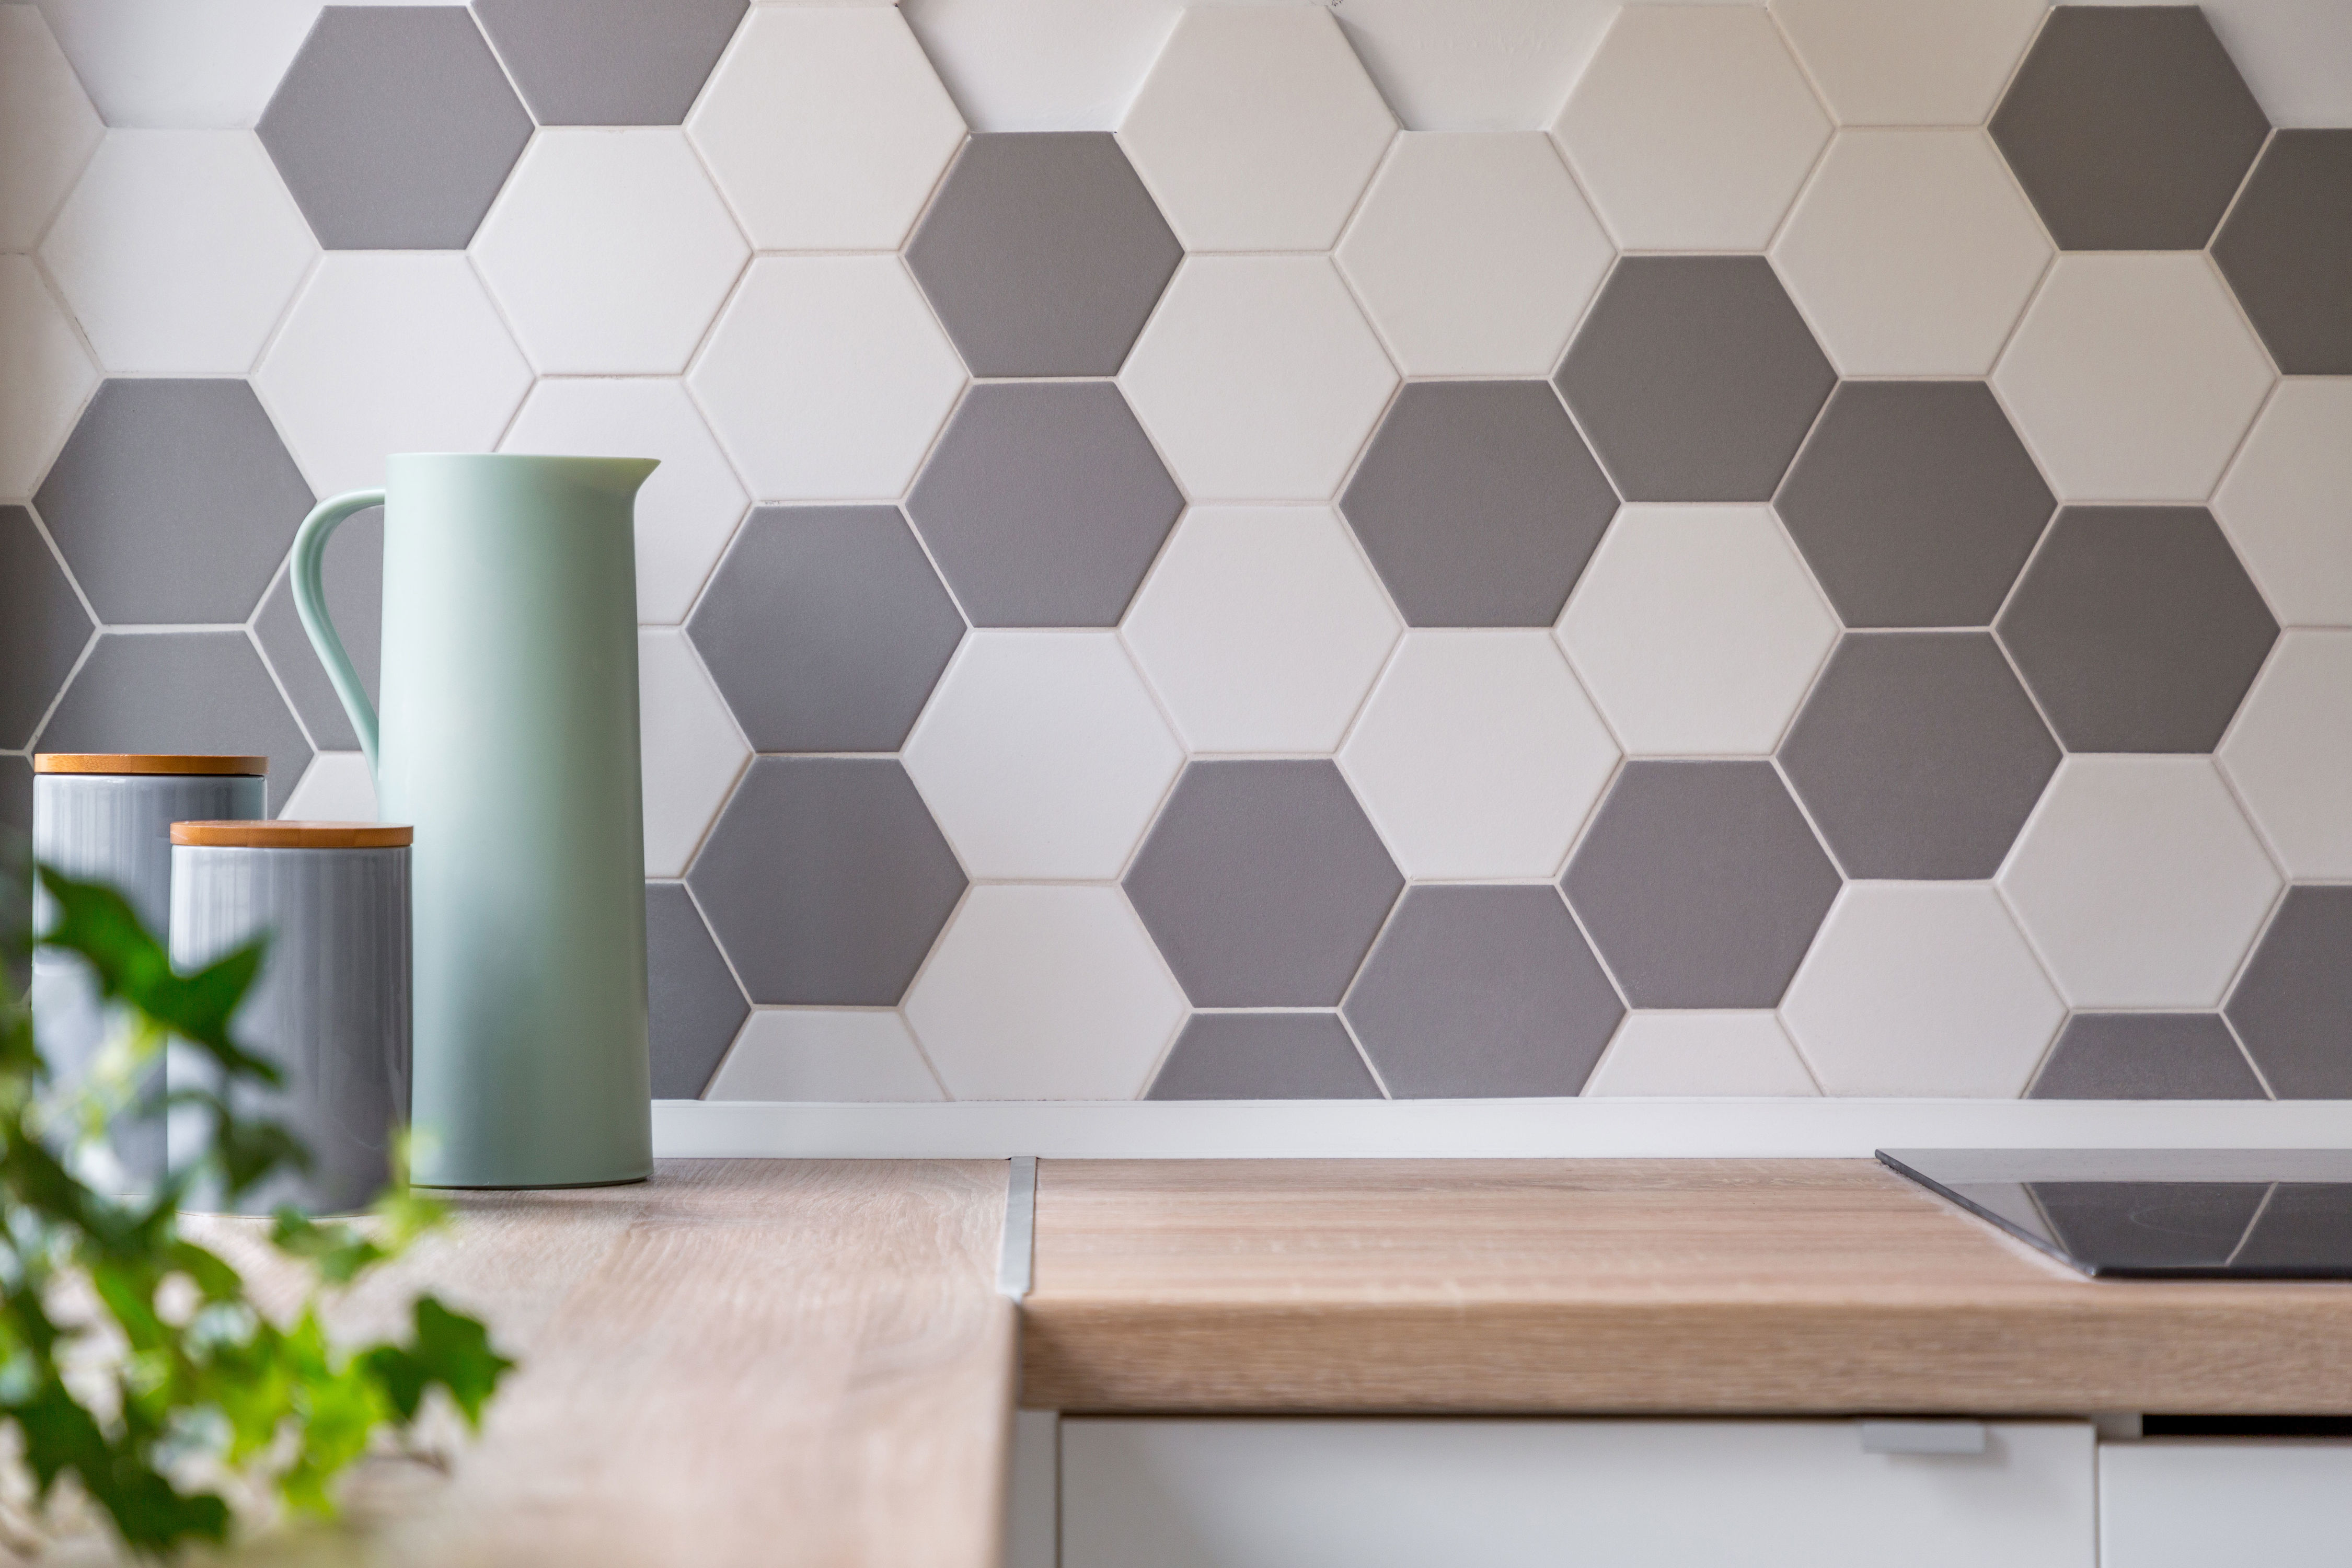 This Modern Tile Trend Has Pinterest Divided